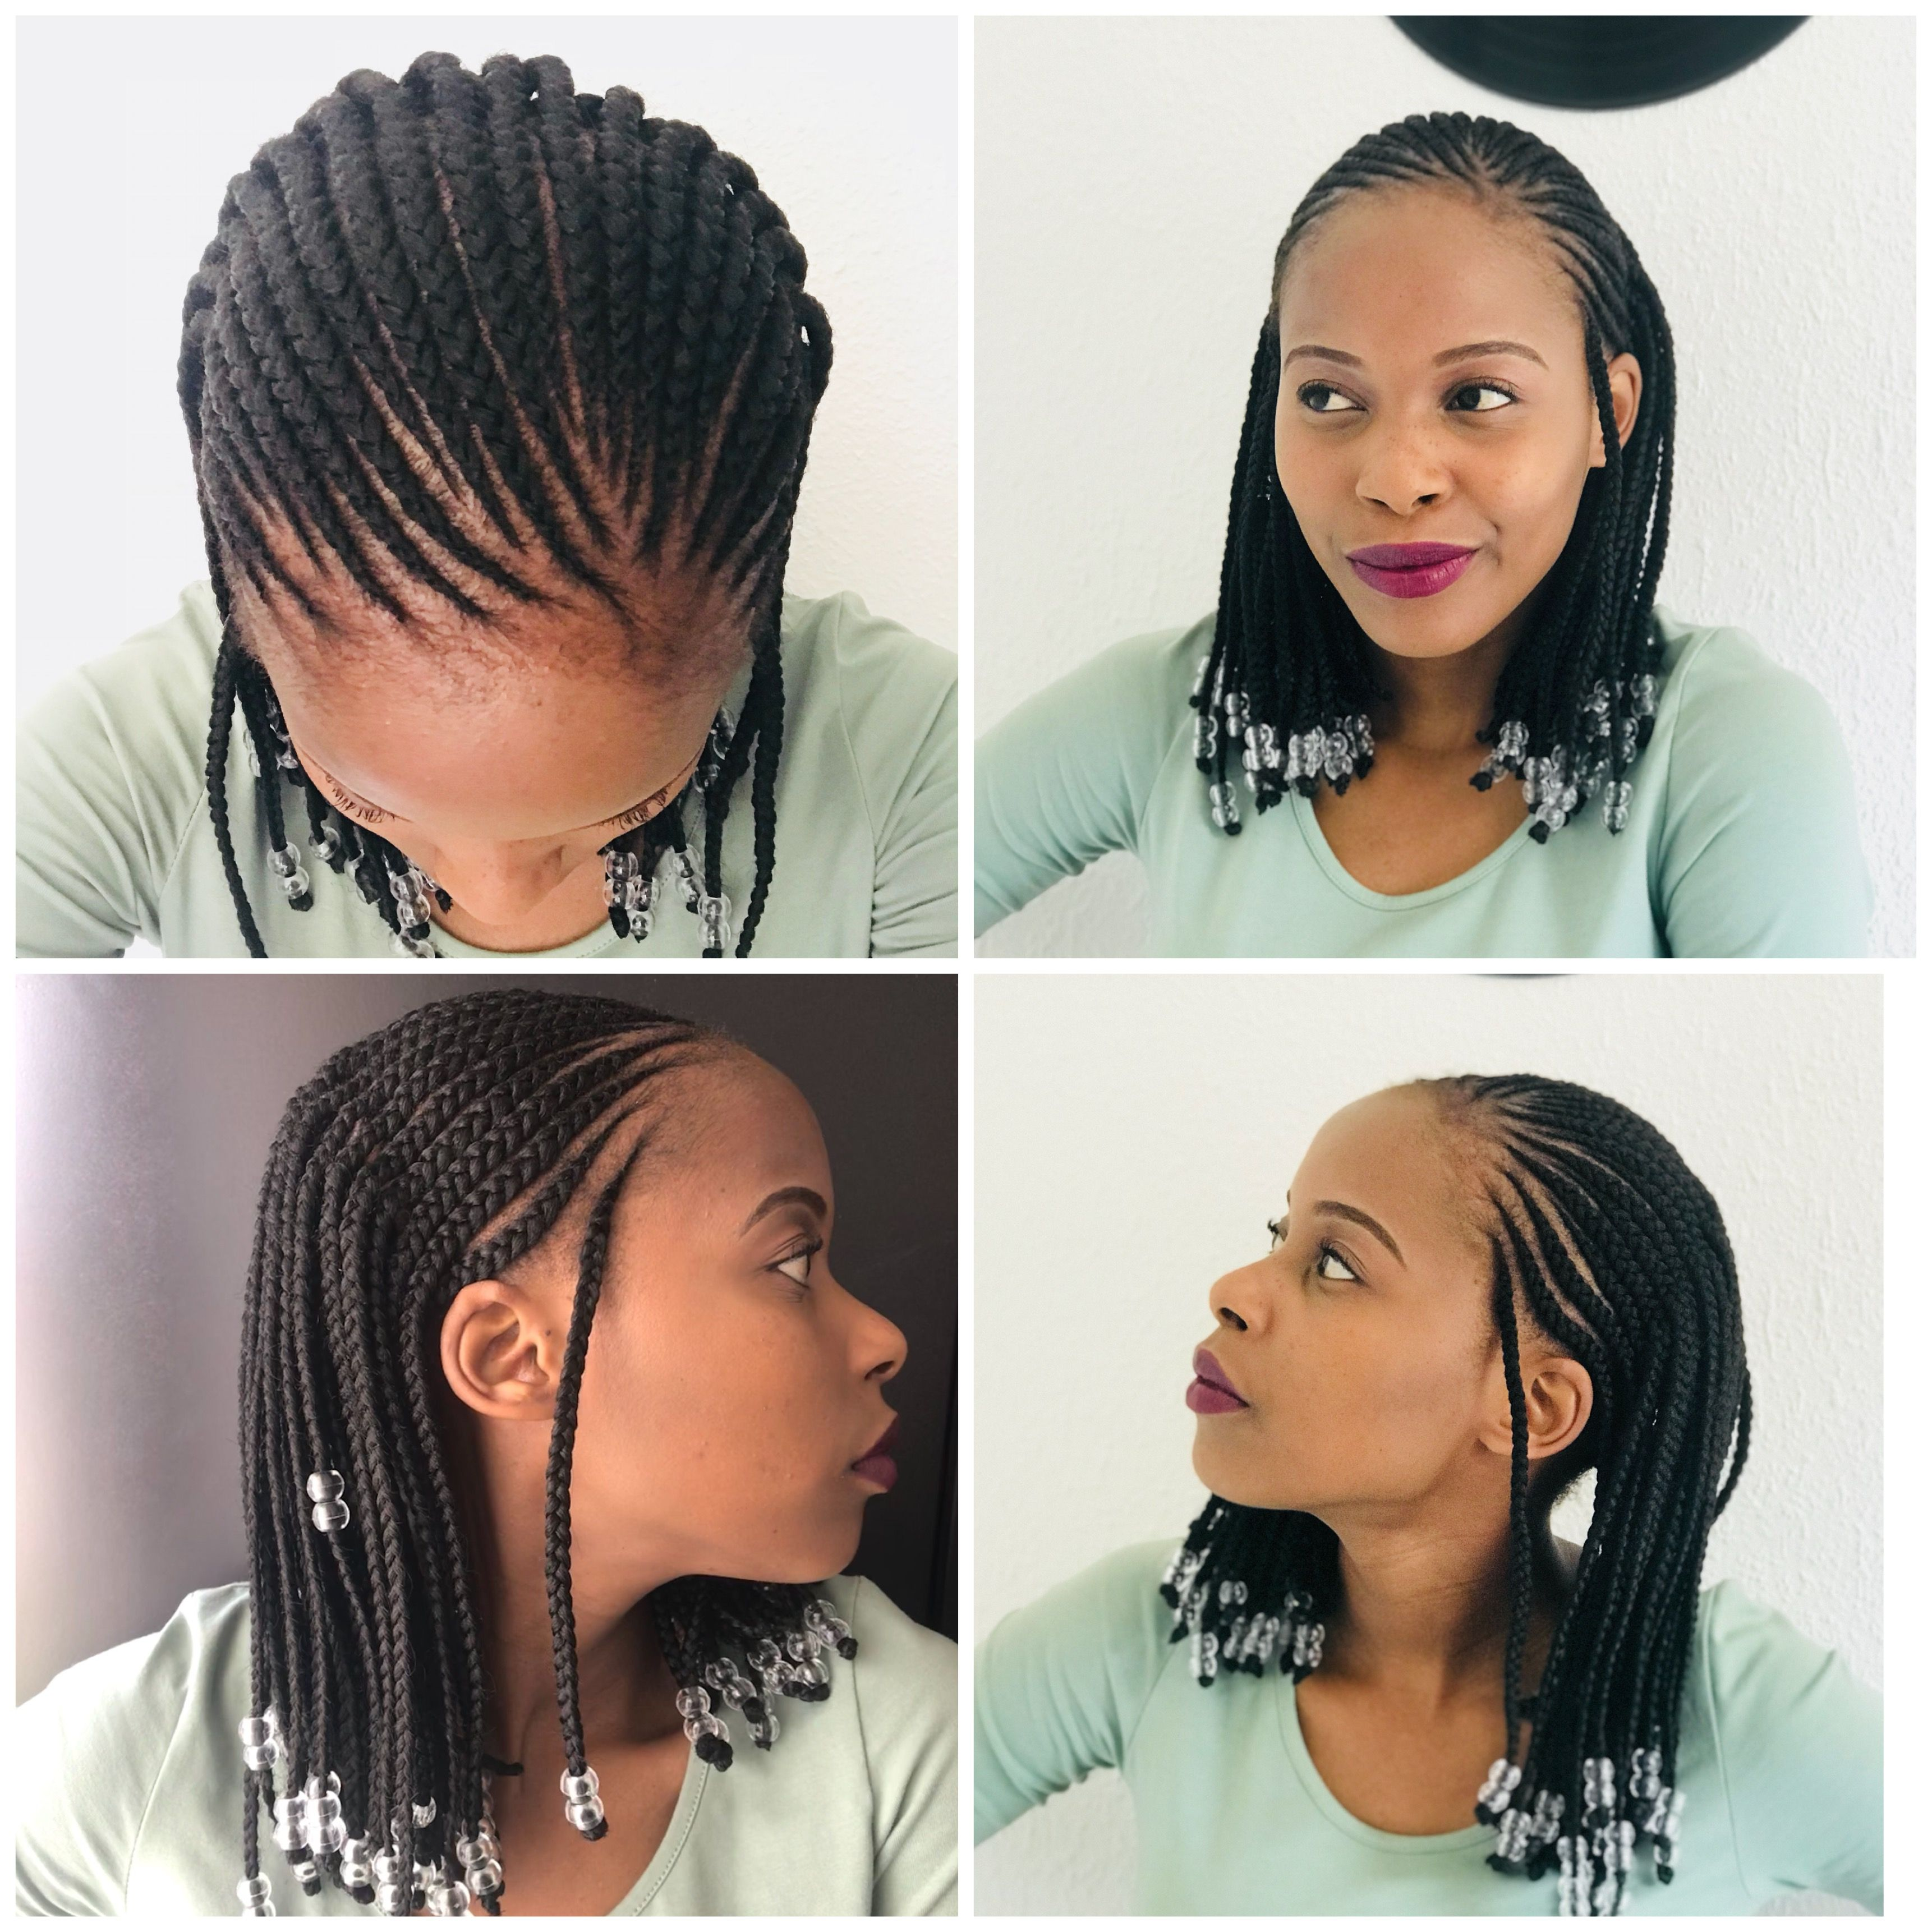 Alicia Keys Inspired Cornrows And Braids With Beads Cornrows